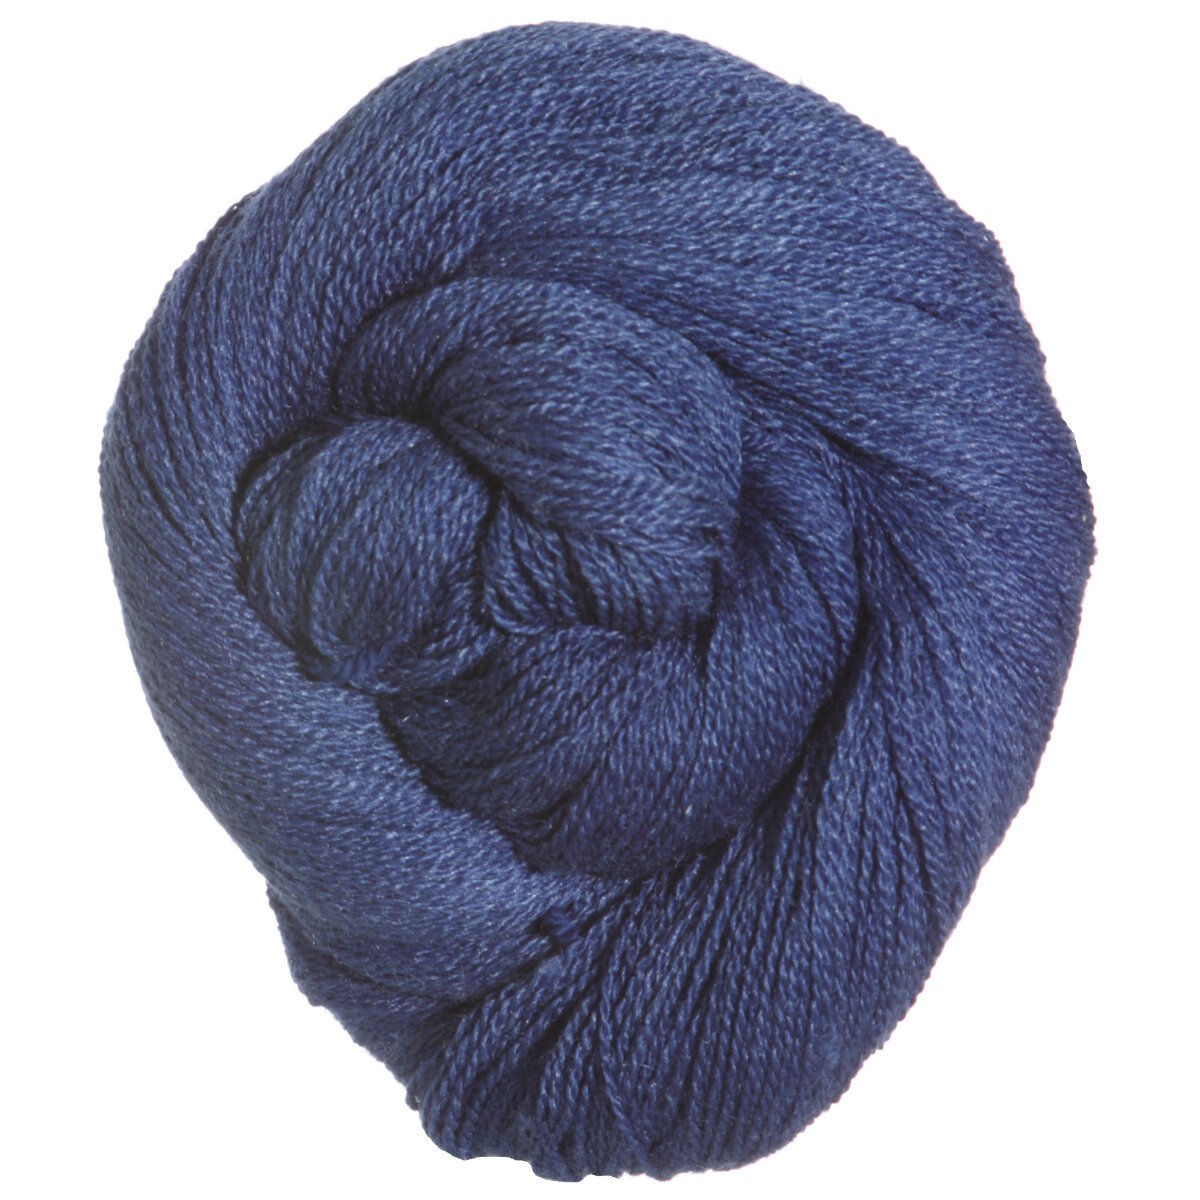 Knitting With Two Colors Carrying Yarn : Swans island natural colors lace yarn lapis